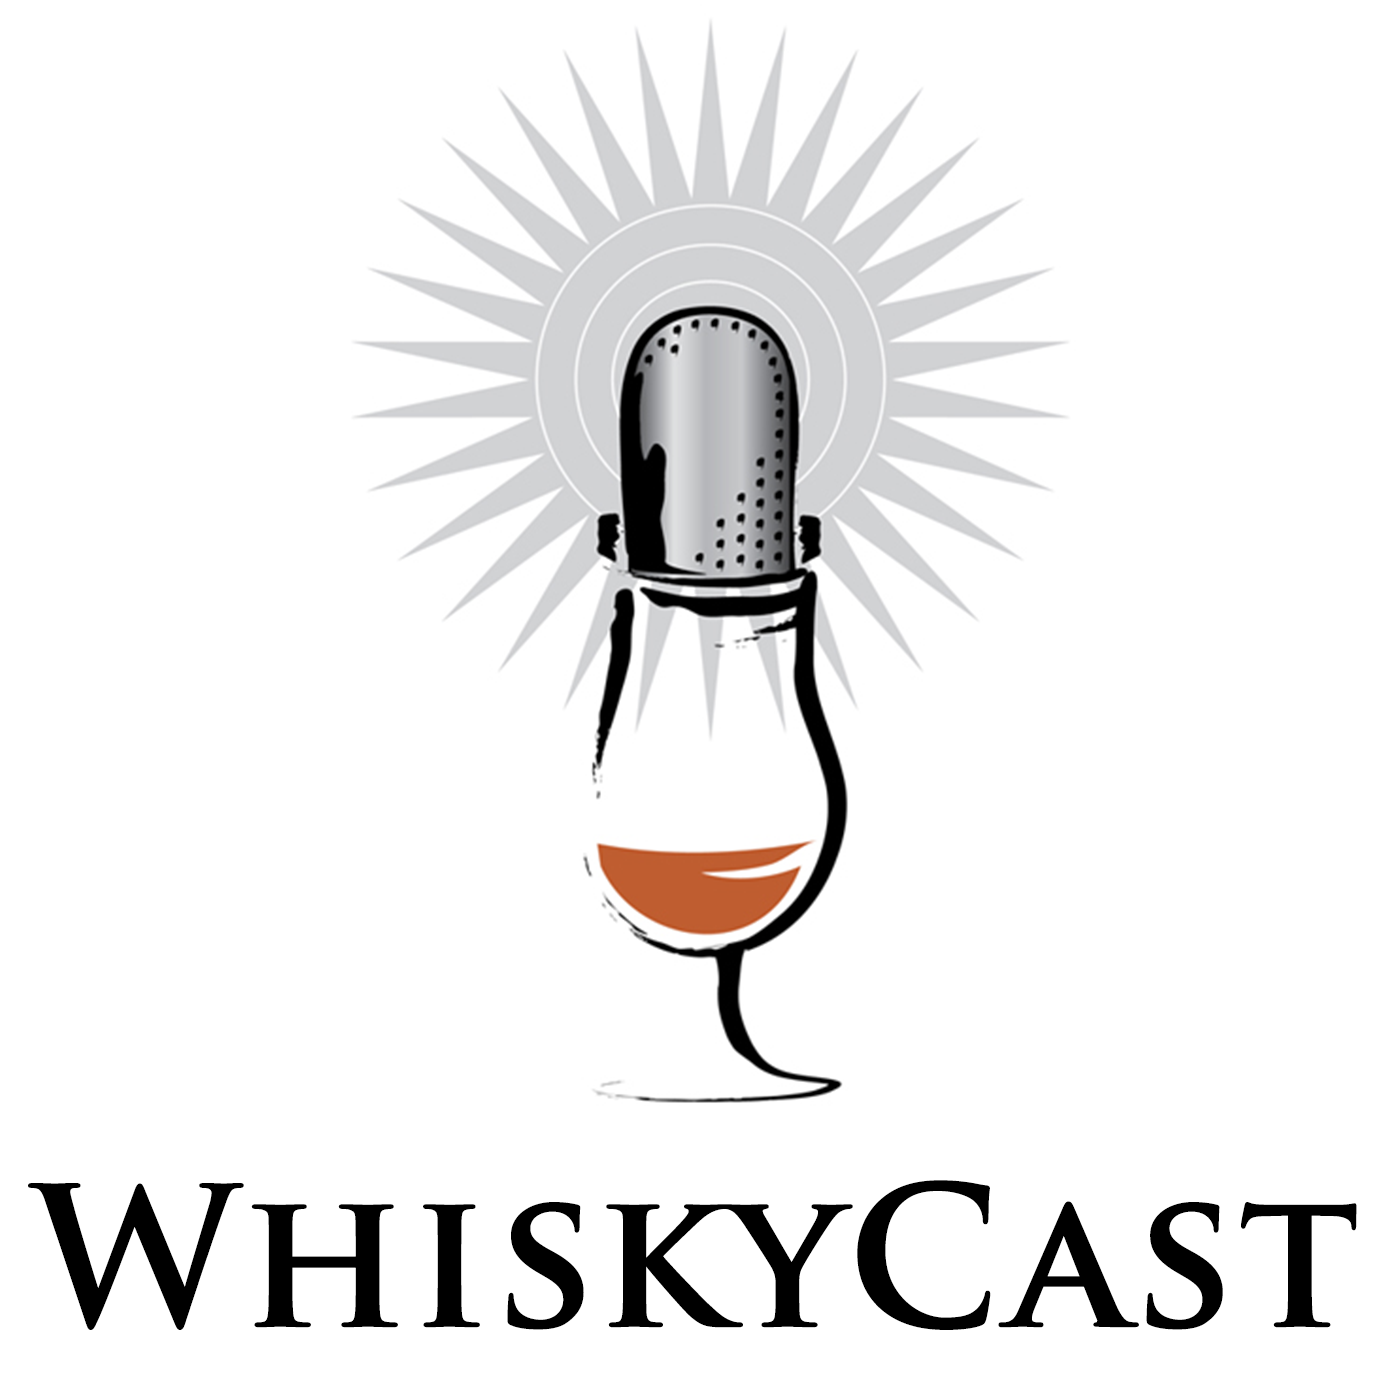 WhiskyCast Episode 454: December 2, 2013